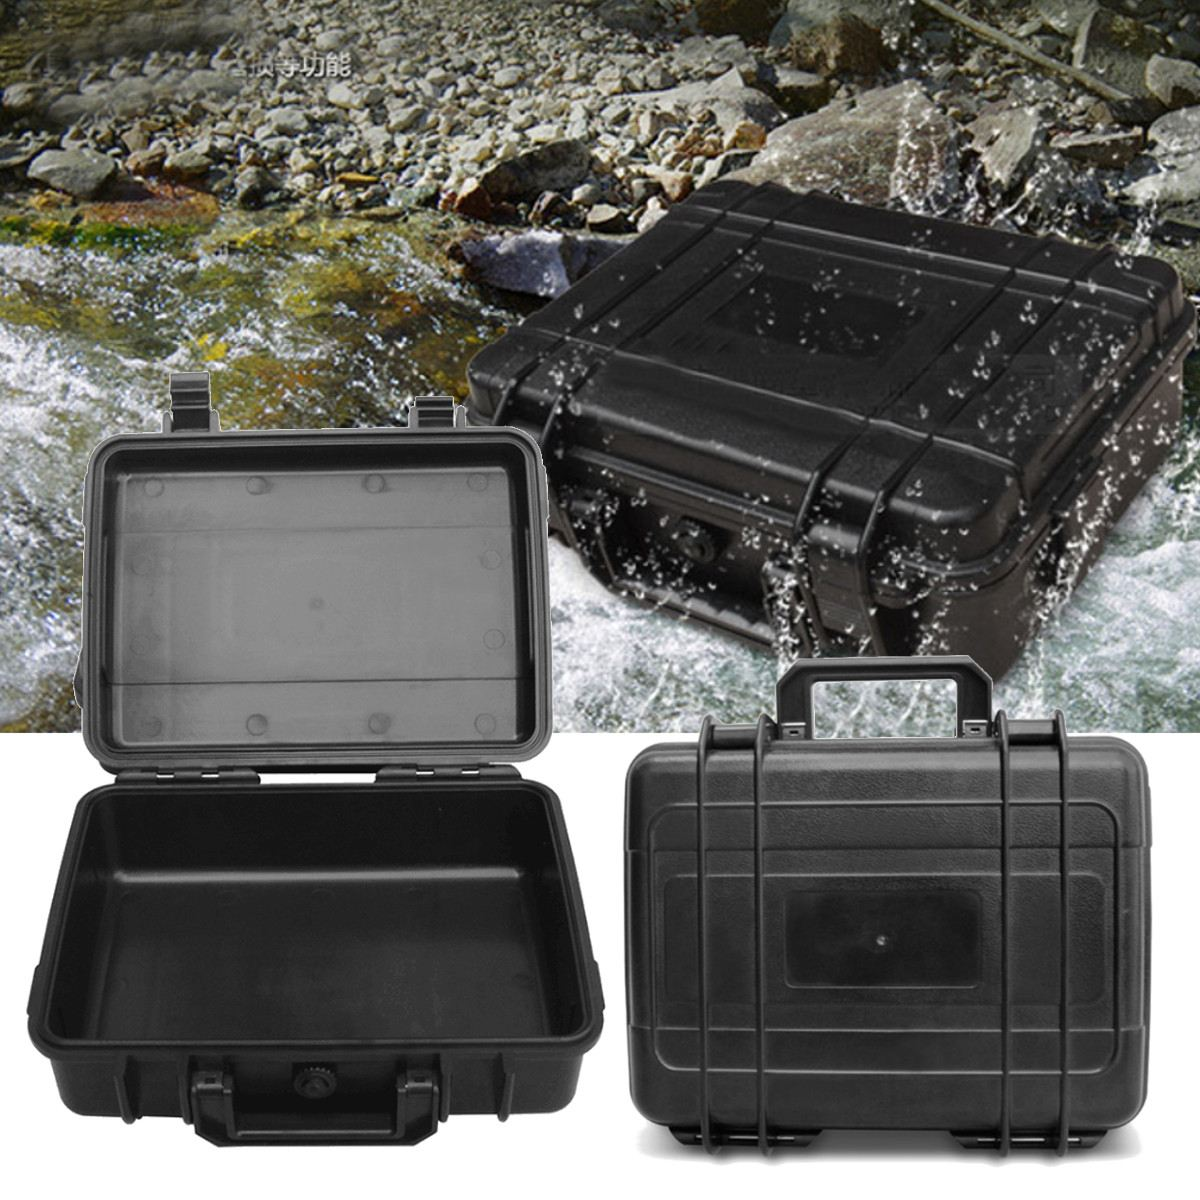 3Sizes Hard Carry Tool Case Toolbox Waterproof Hard Carry Case Plastic Equipment Protective Storage Boxes